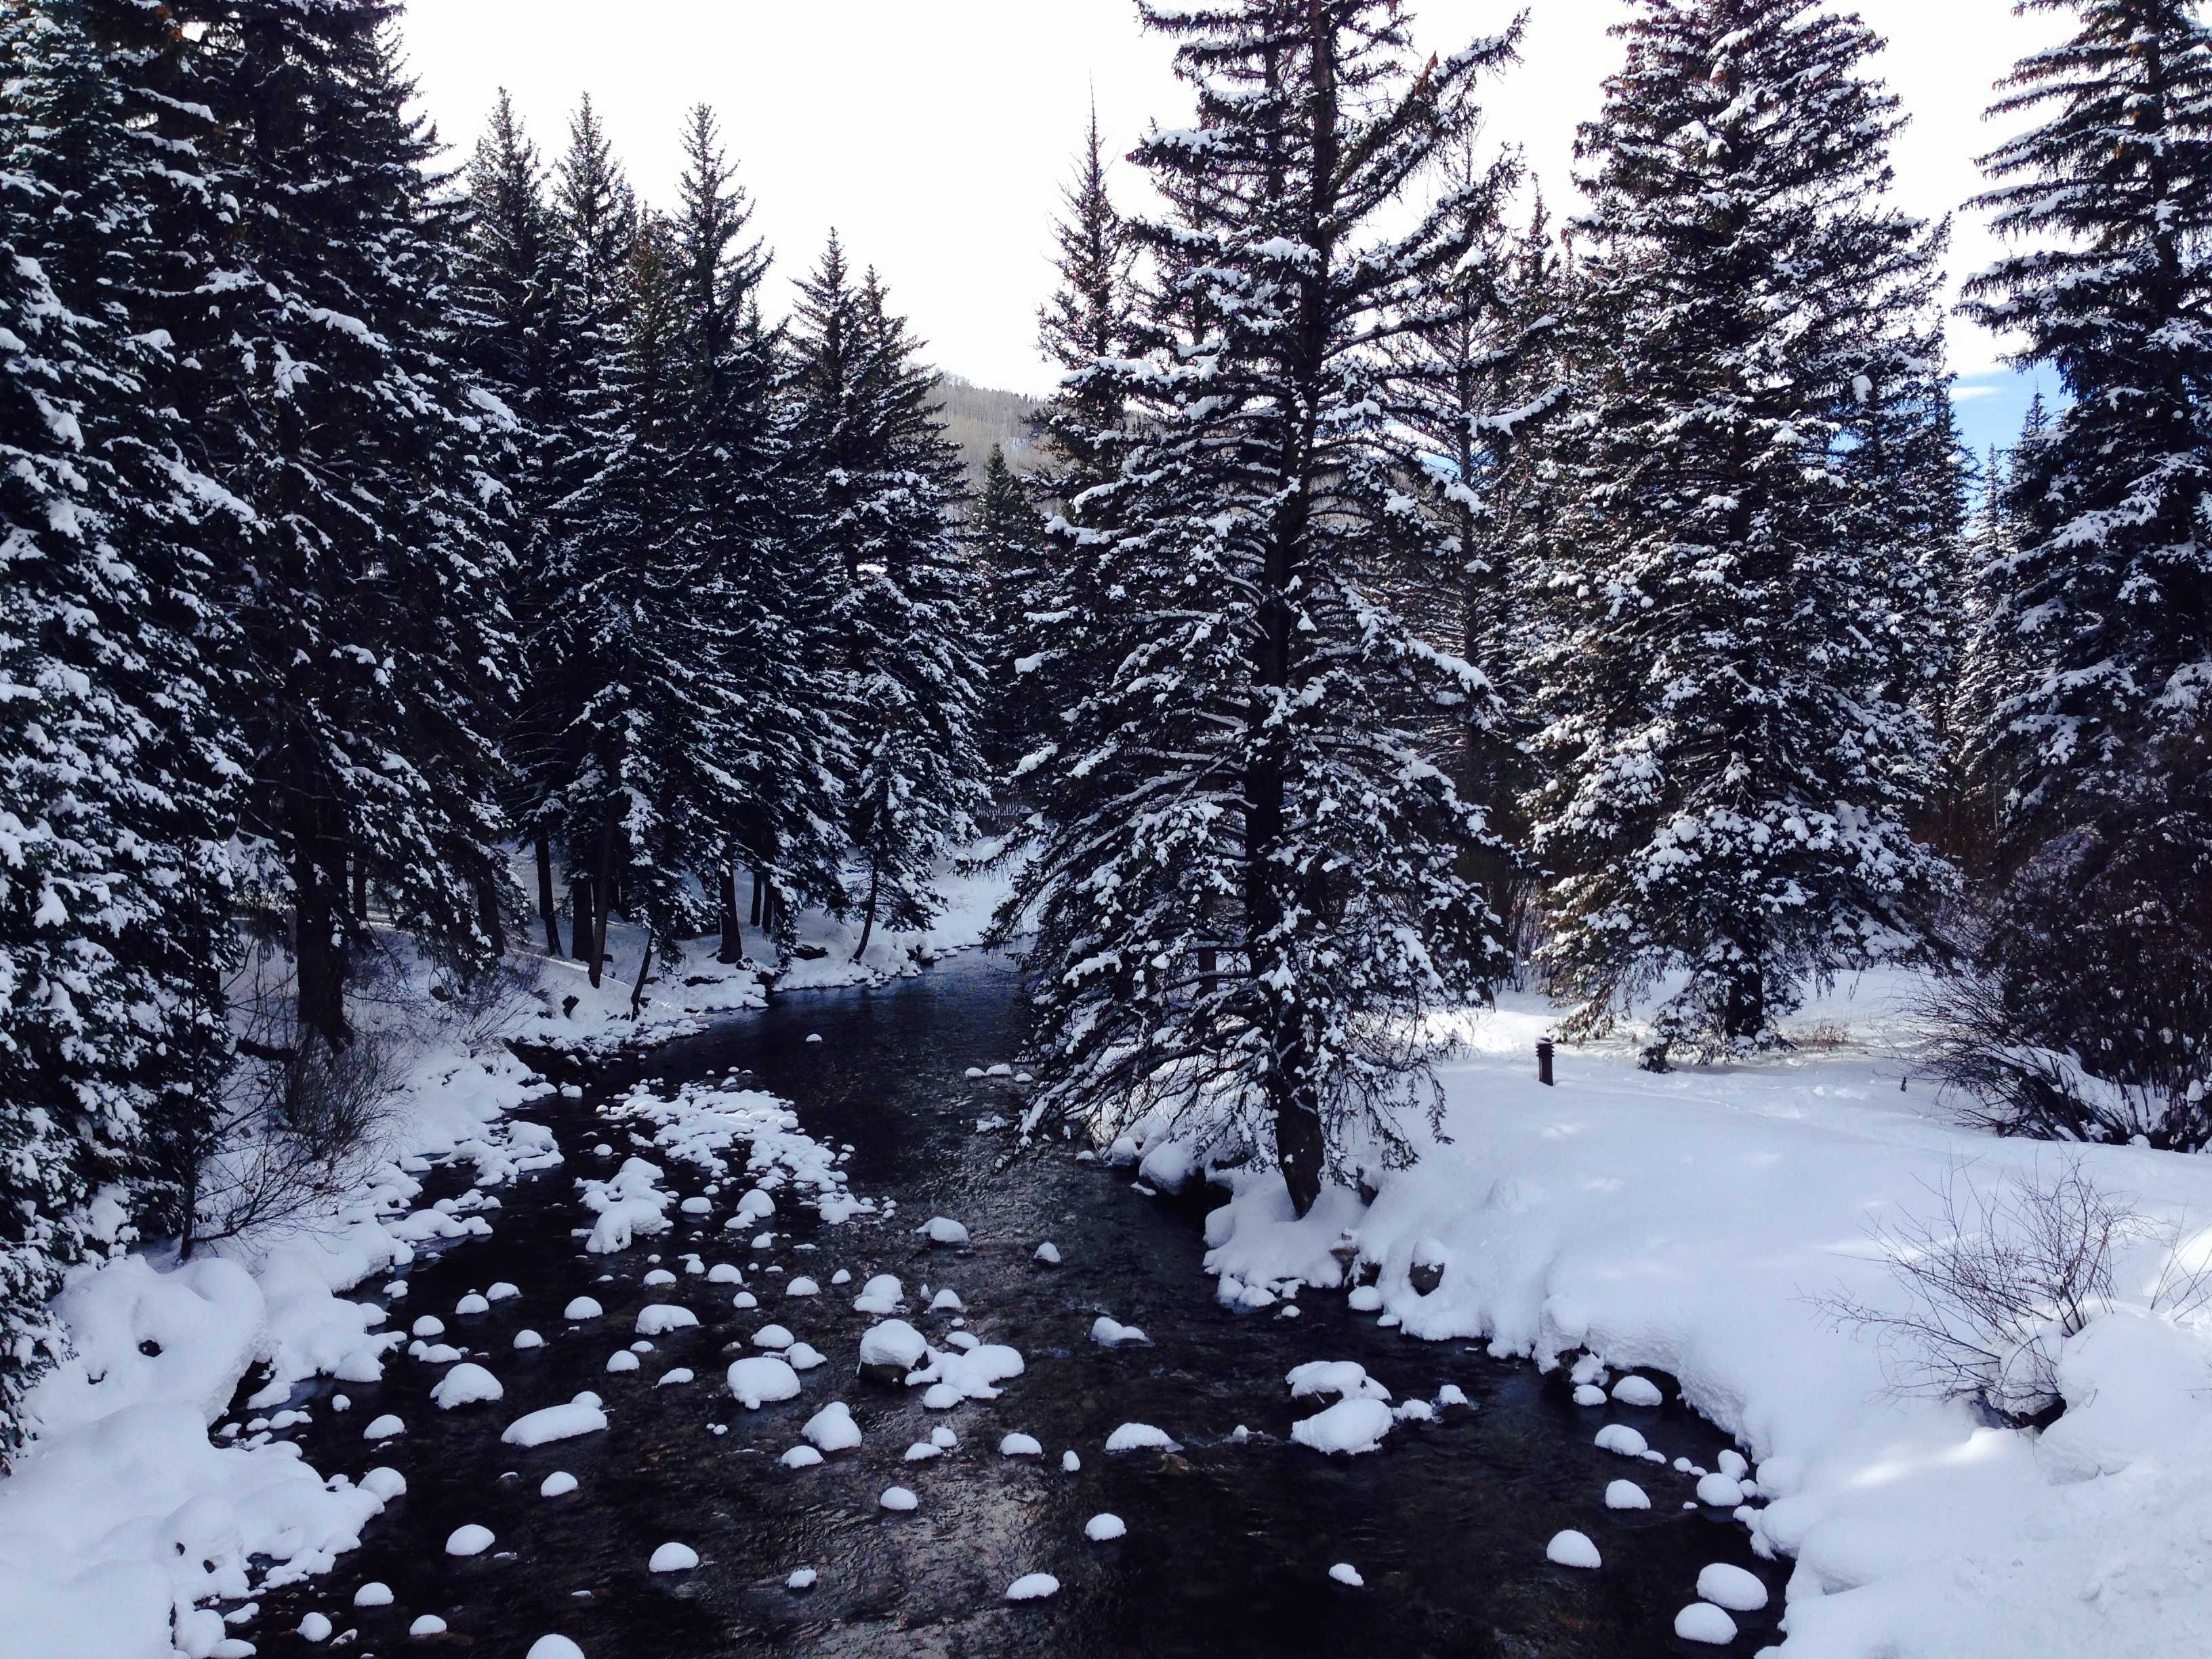 A river freezes in Vail, Colo. One thing that might be helpful when trying to cool off at school is to imagine a scene like this in the cold. Photographer: Syd Stone '16.